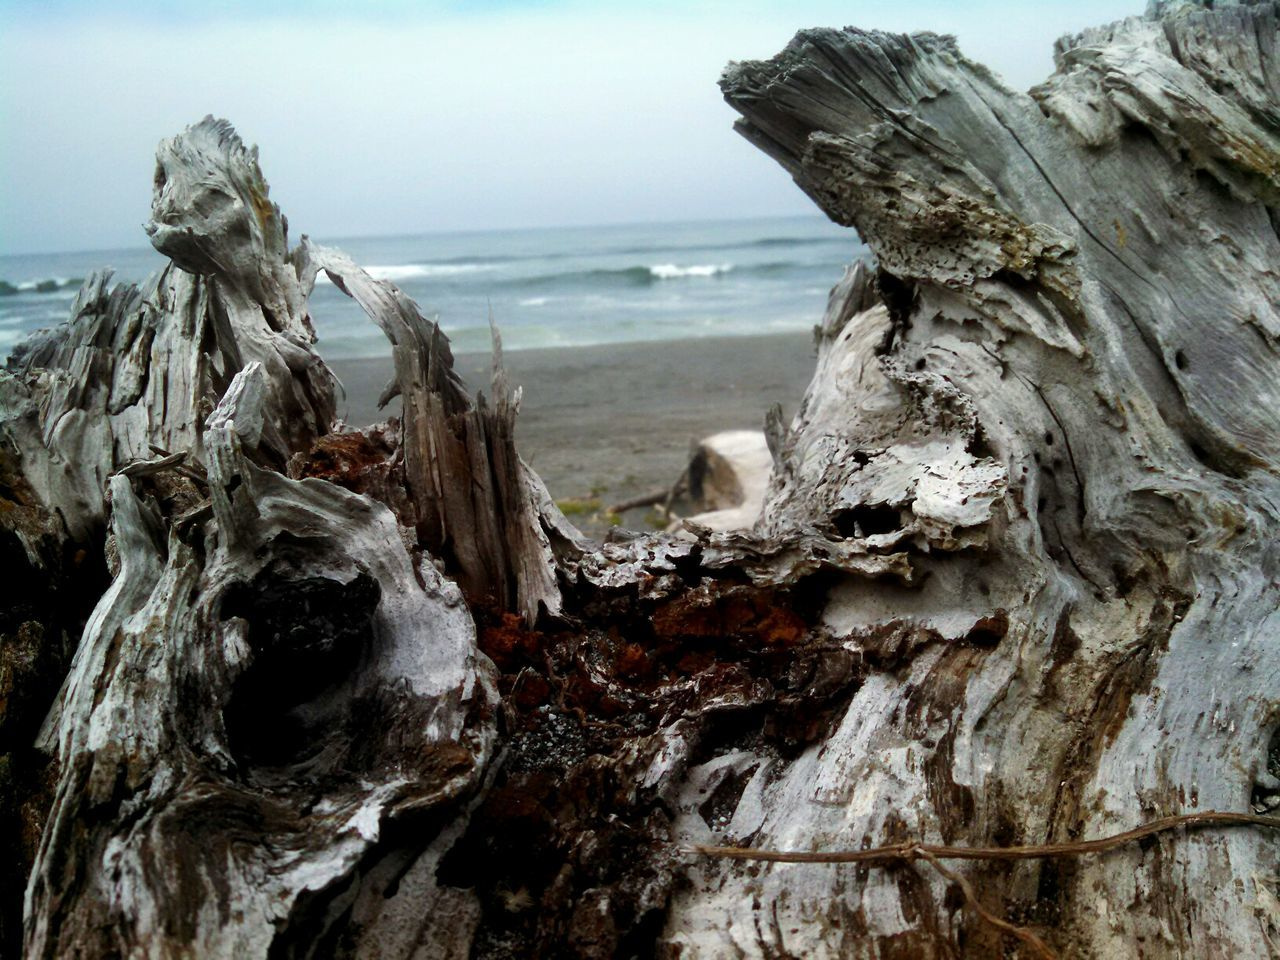 Eyeem Photography EyeEm Best Shots - Nature EyeEm Nature Lover No People Lobuephotos Motorola Mobile Photography Smartphonephotography Exploring From My Point Of View Enjoying Life California Humboldt County Dry Lagoon Beach Walk Driftwood Pacific Ocean Ocean View Using Nature